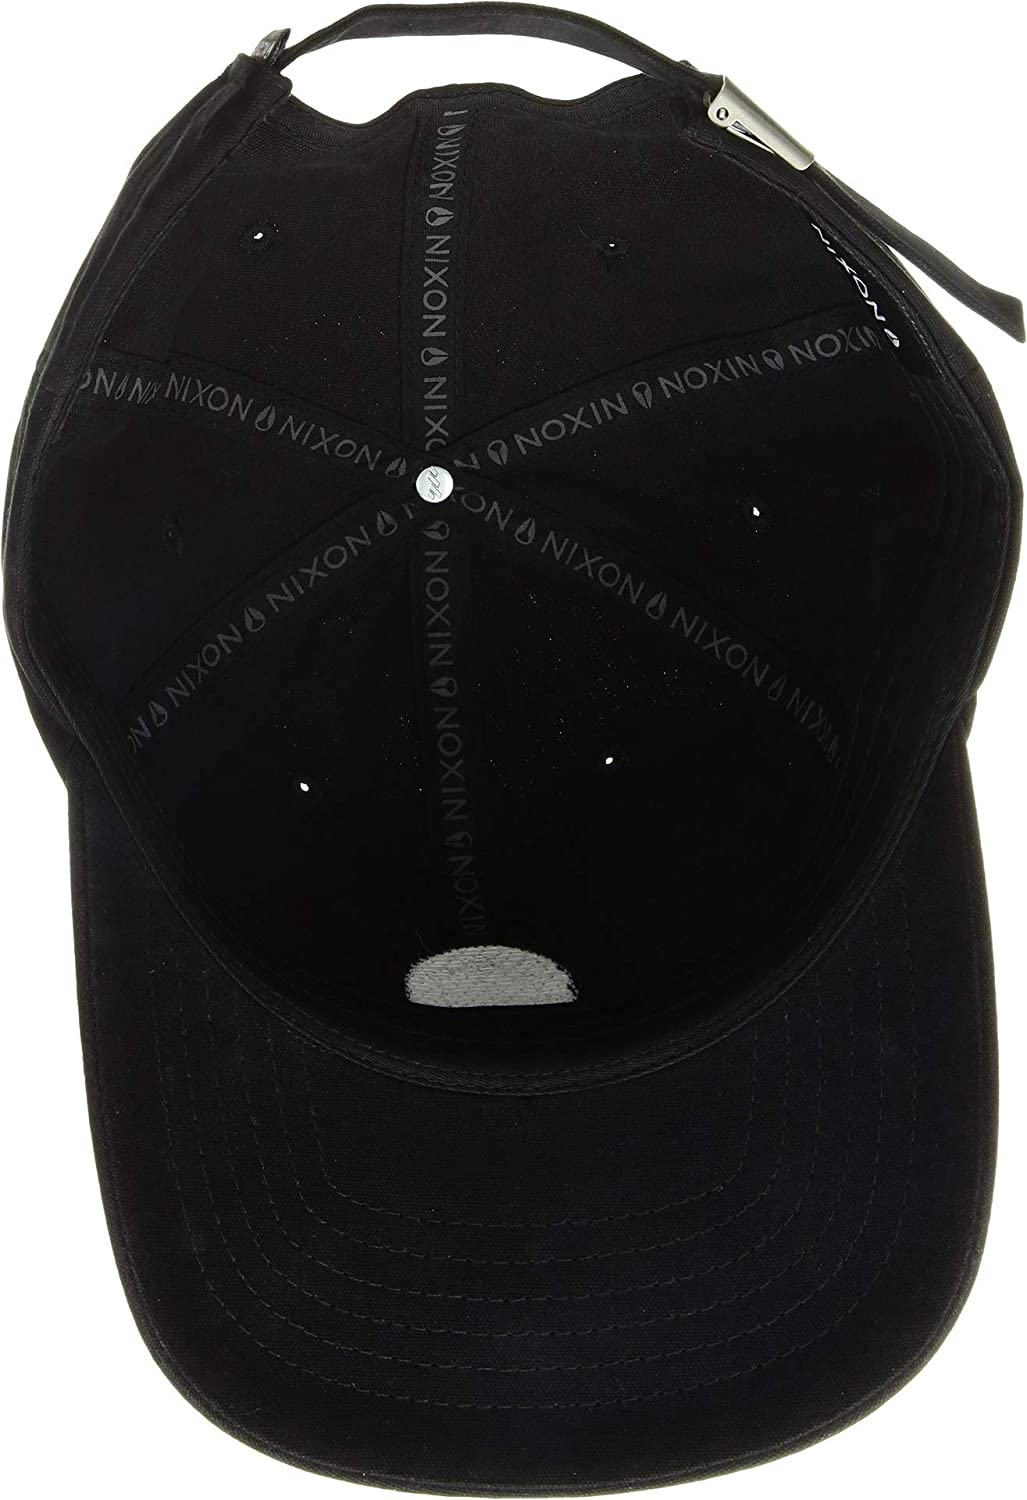 cc7fb7947cbb Amazon.com: NIXON Men's Olivas Strapback Hat Black One Size: Clothing